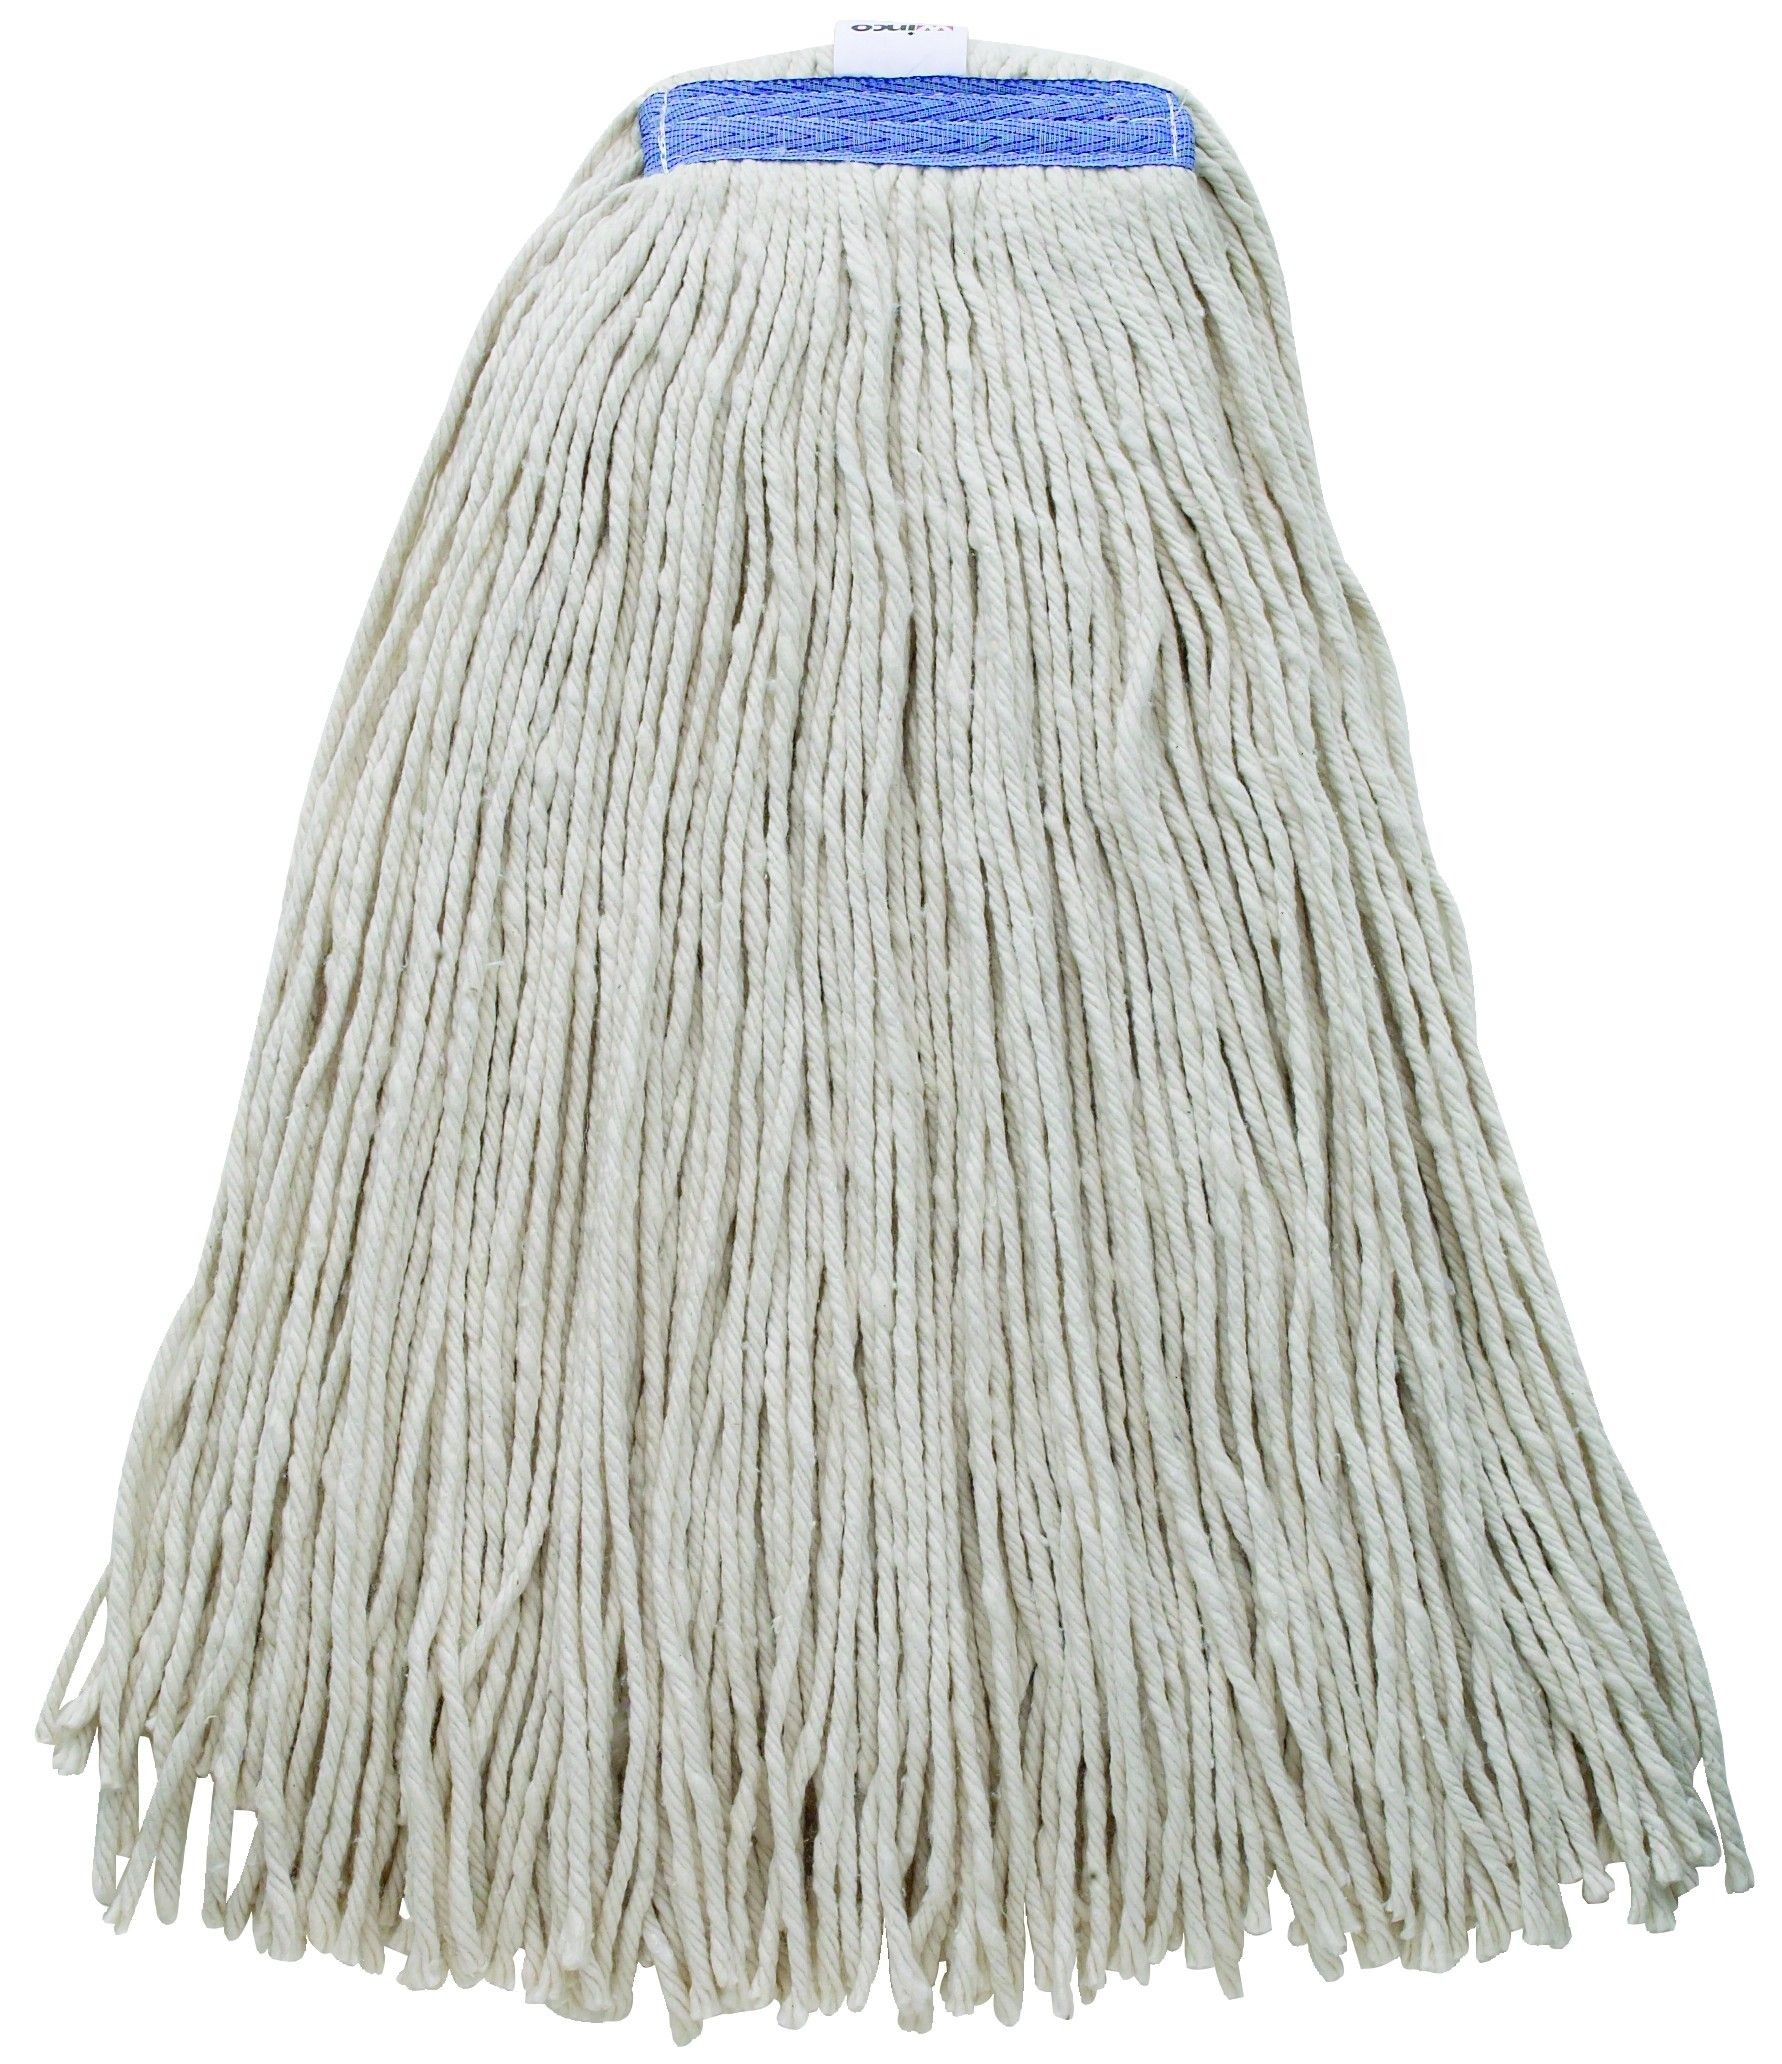 32 Oz, 800G Premium White Yarn Mop Head, Cut Head